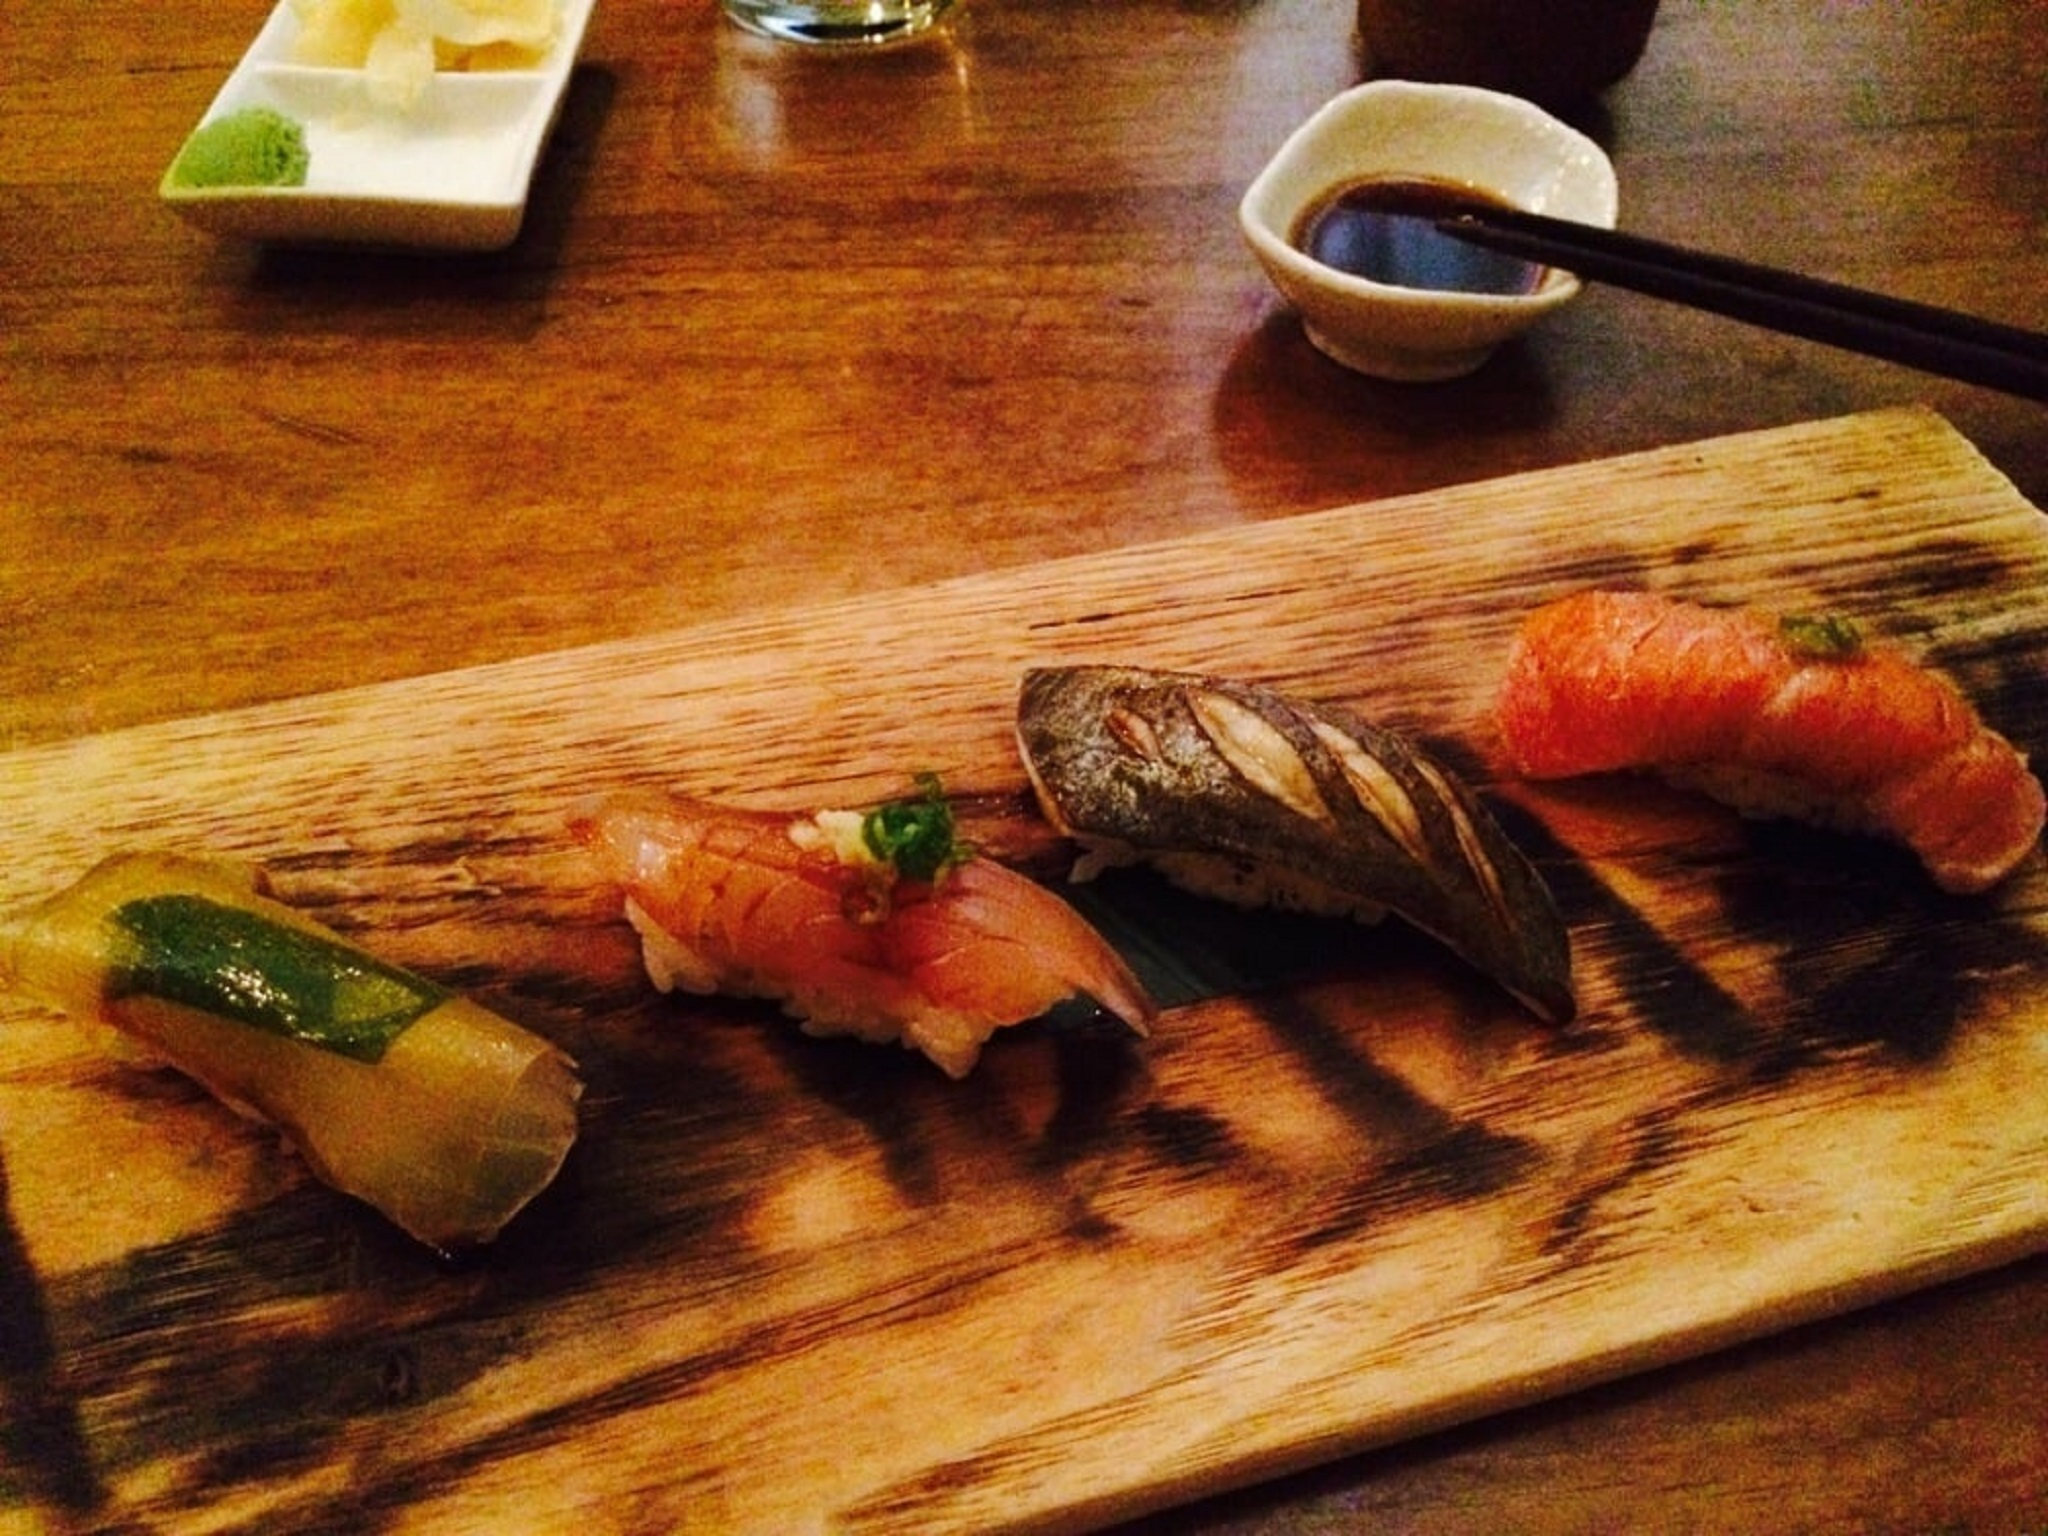 Four pieces of sushi on a wooden board with chopsticks on a dish of soy sauce